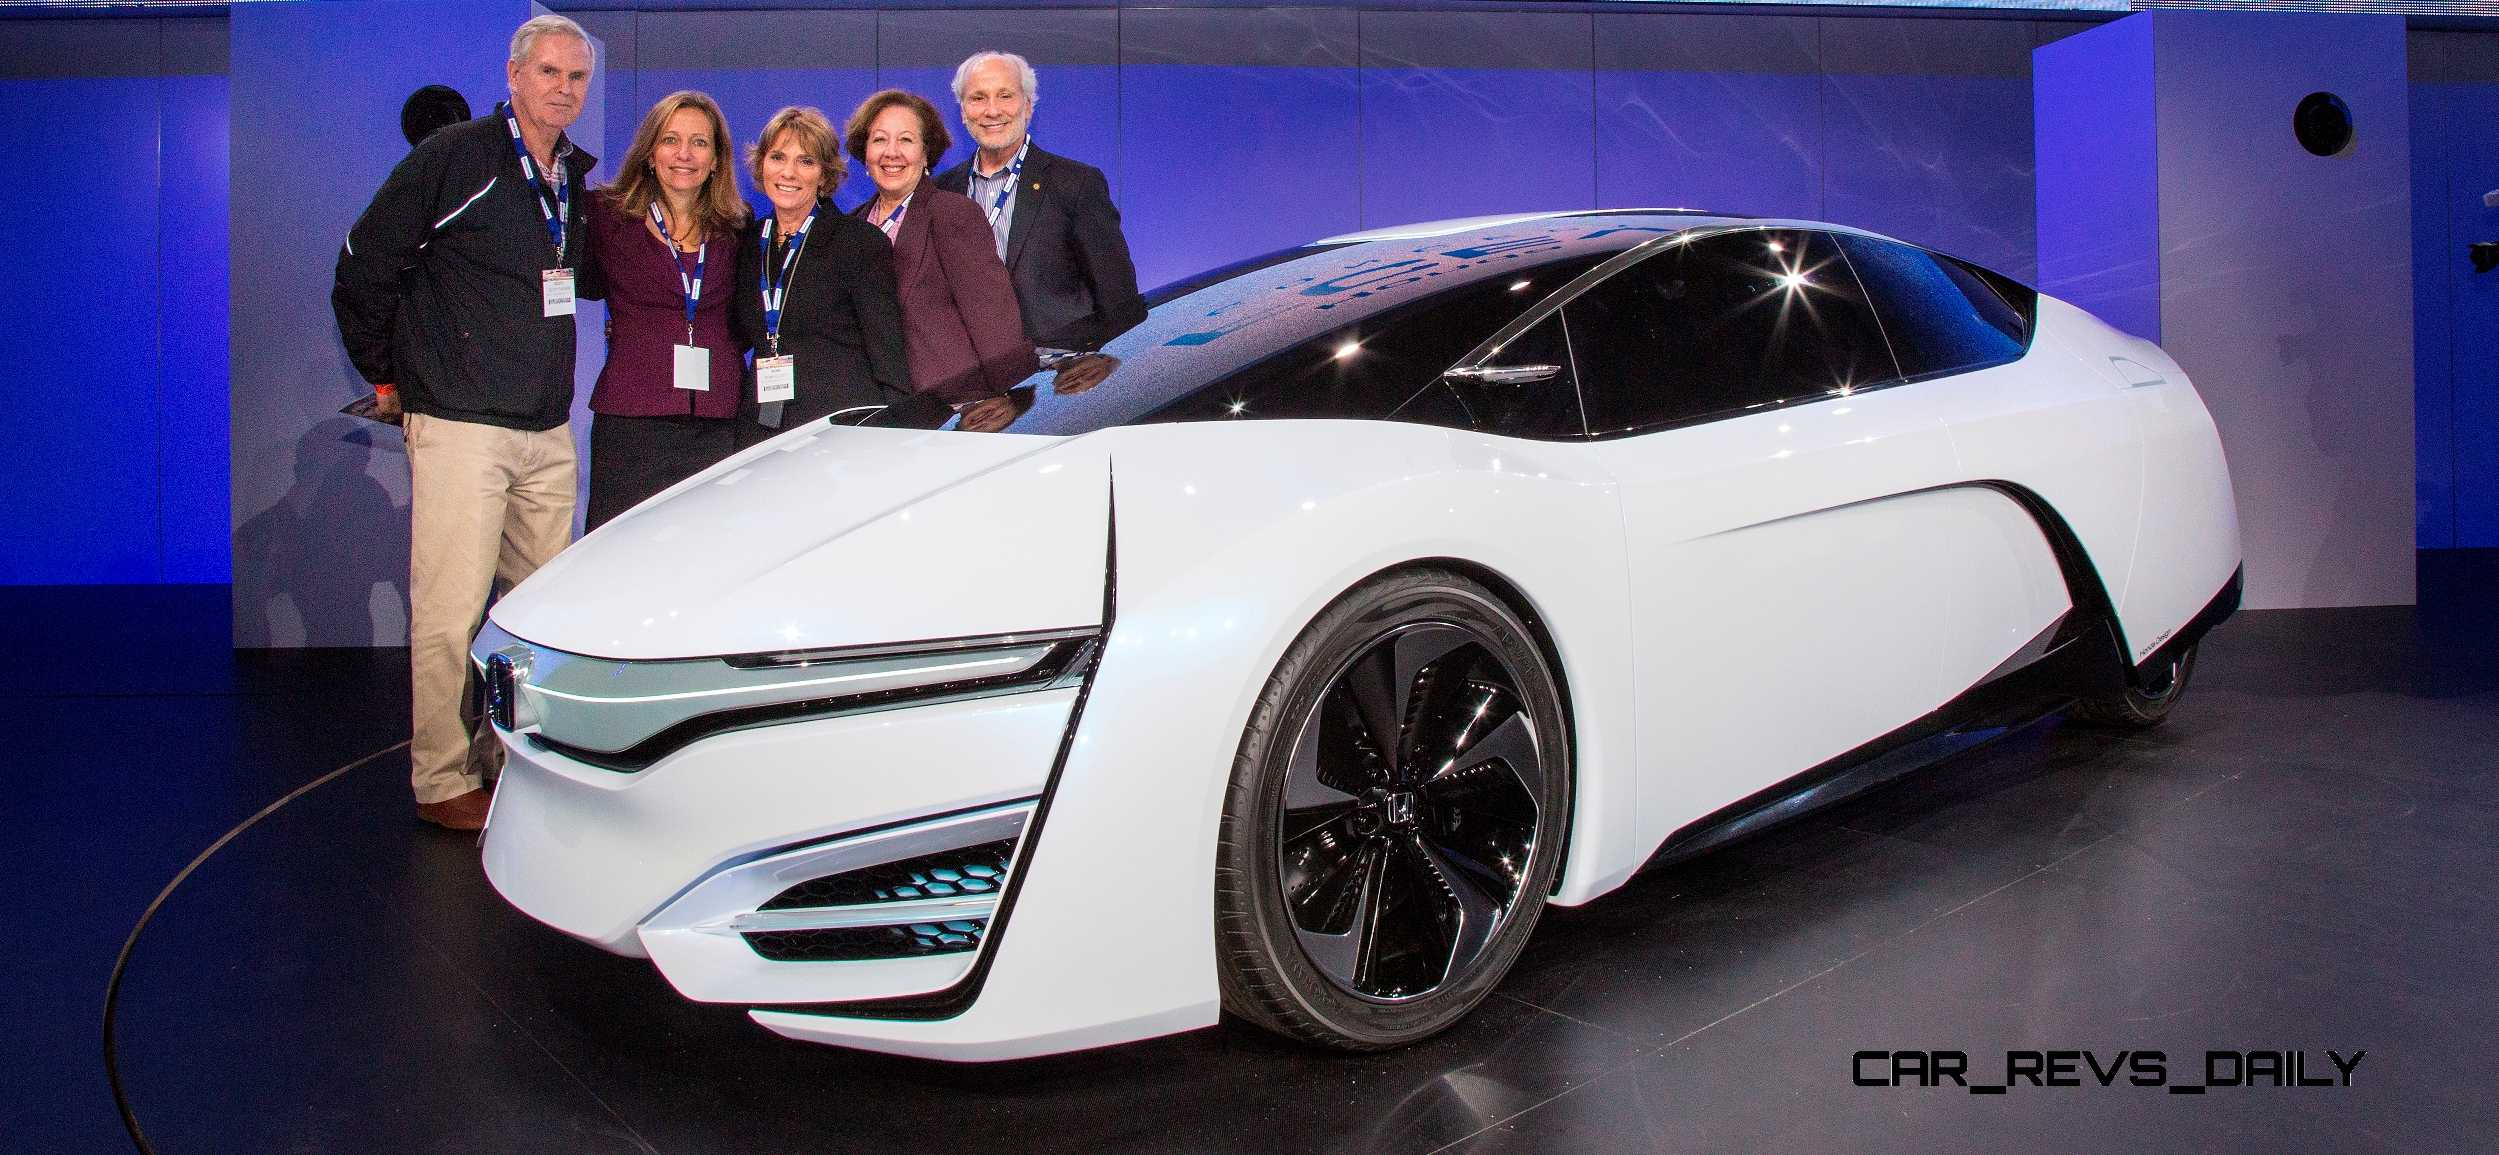 Concept To Reality: Honda Shows Good Design Momentum With